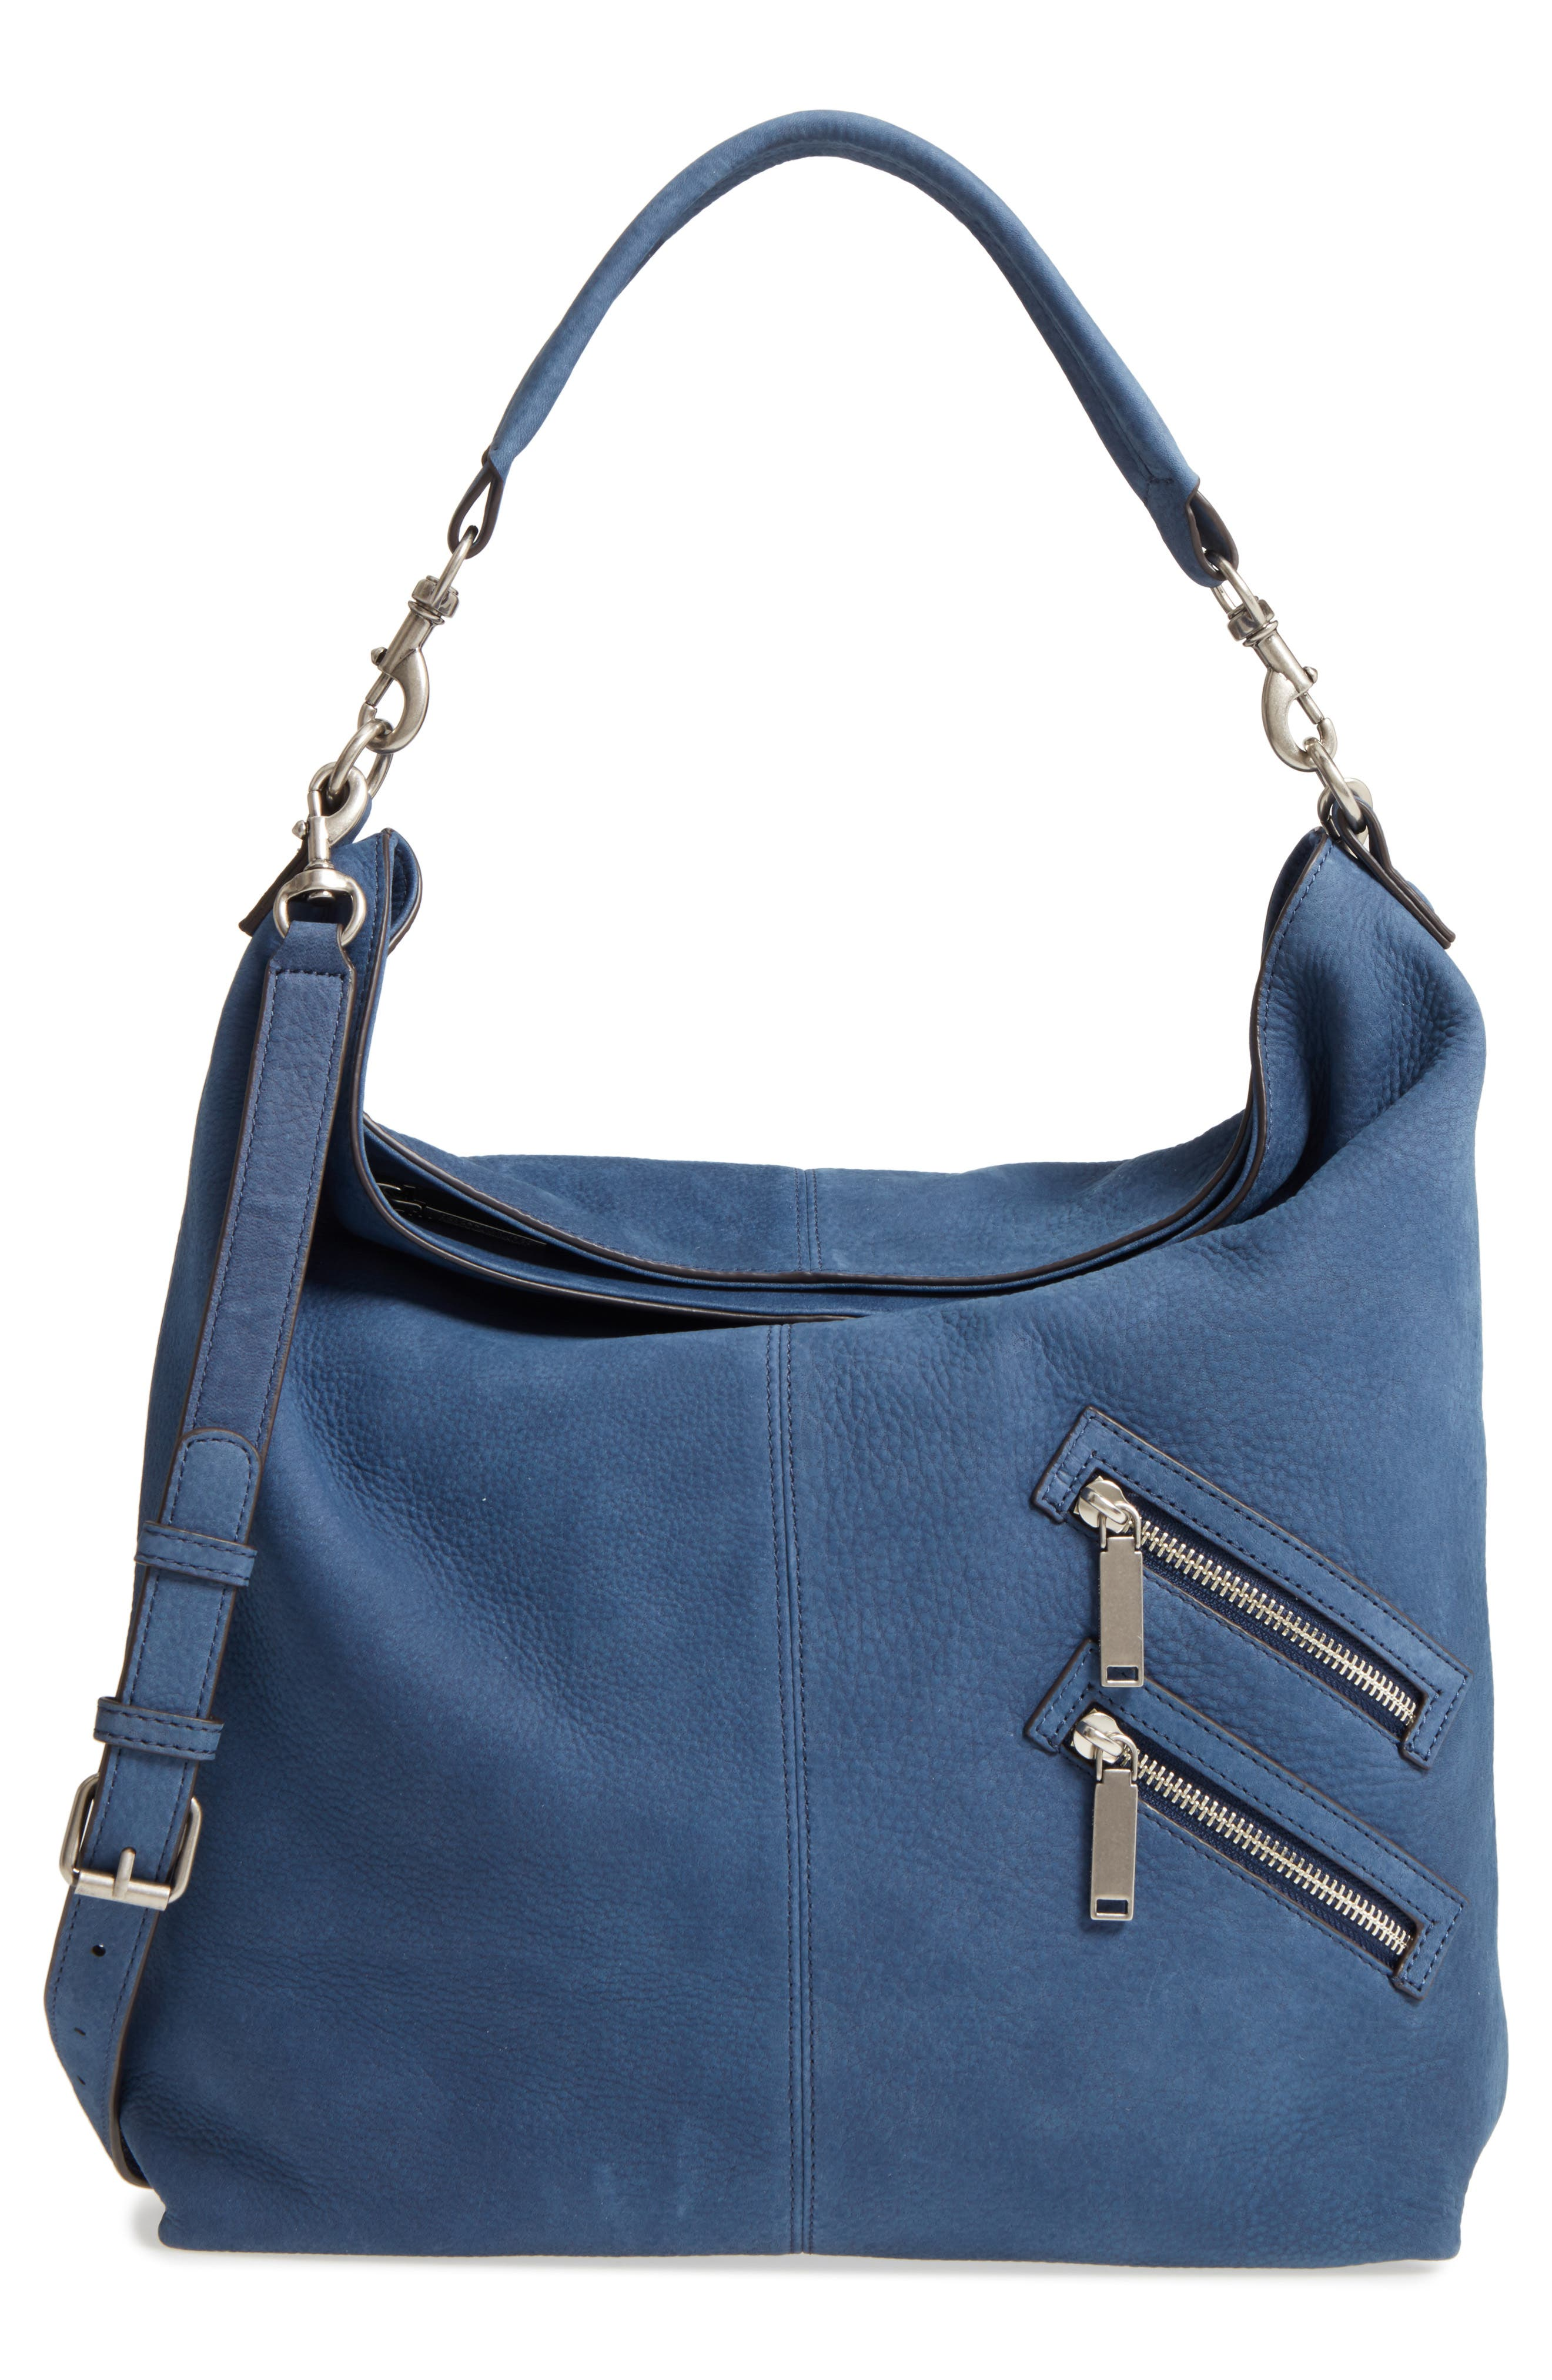 Rebecca Minkoff Large Jamie Convertible Leather Hobo